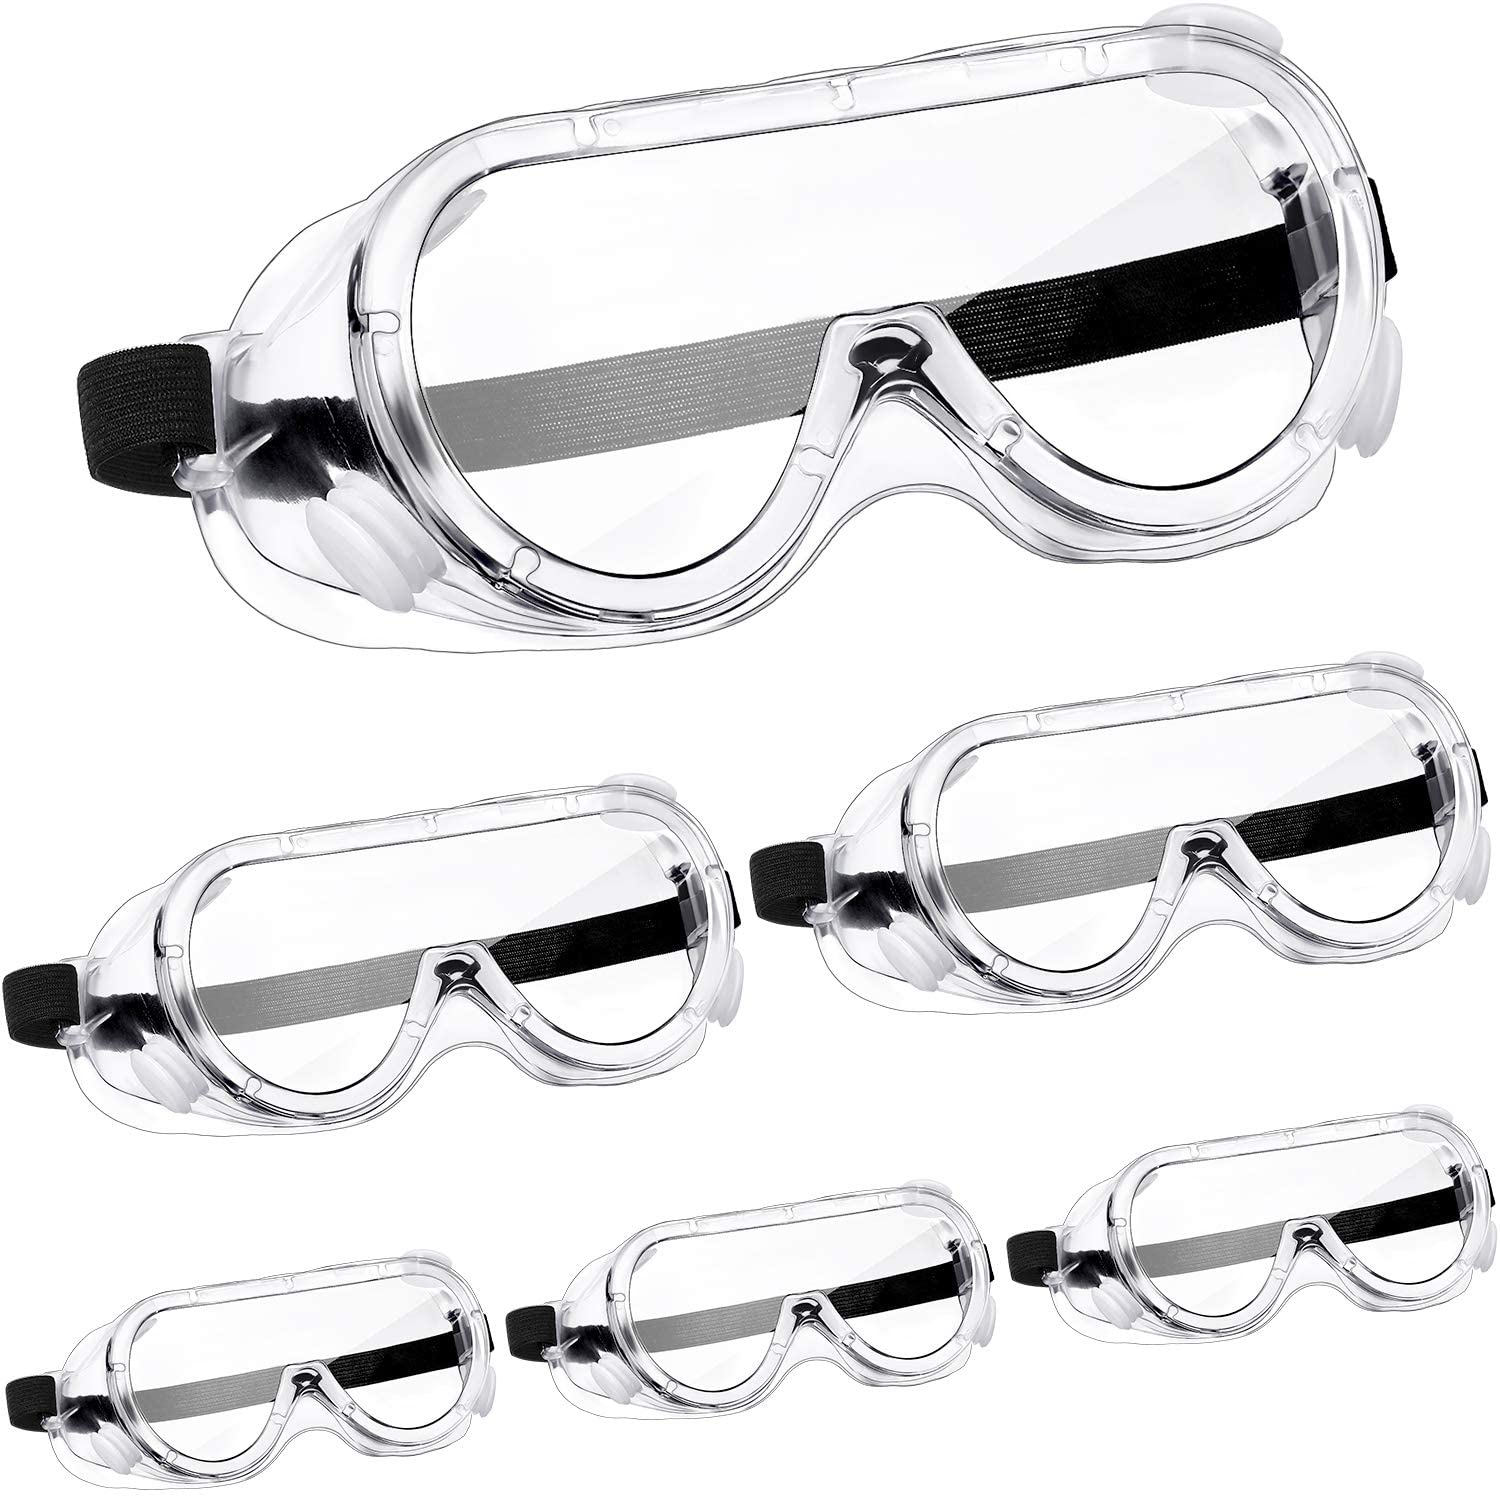 6 Pairs Safety Goggles Protective Safety Glasses Chemical Splash Resistant Goggle Clear Adjustable Goggle for Home Lab Workplace Eye Protection (Black)